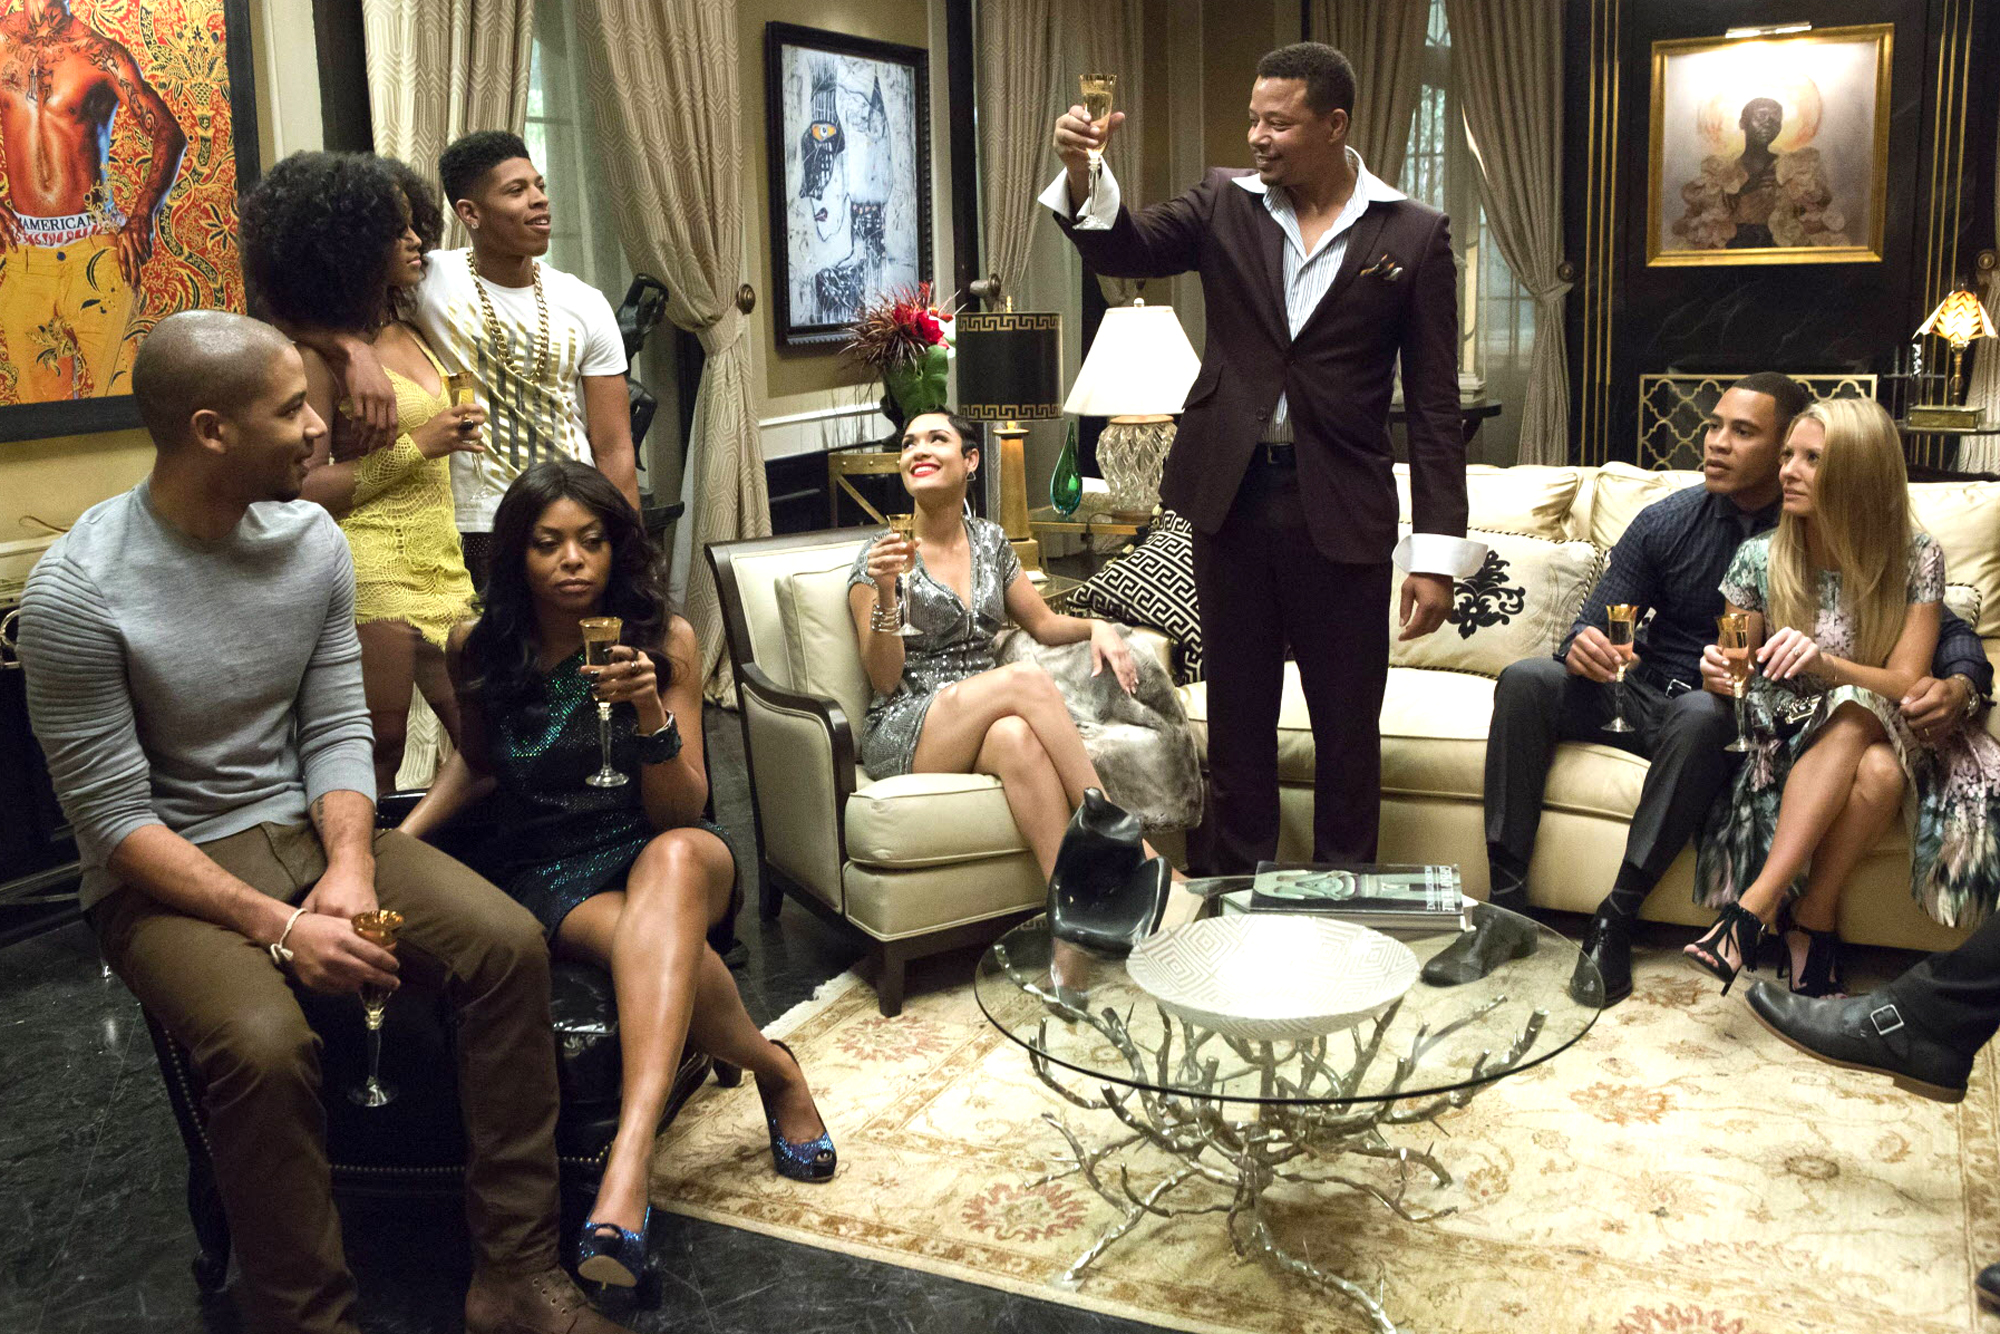 """TV STILL -- DO NOT PURGE -- EMPIRE: Lucious (Terrence Howard) toasts his family in the """"Devil Quotes Scripture"""" episode airing Wednesday, Jan. 21 (9:00-10:00 PM ET/PT) on FOX. Pictured L-R: Jussie Smollett, Serayah McNeill, Taraji P. Henson, Bryshere Gray, Grace Gealey, Terrence Howard, Trai Byers and Kaitlin Doubleday. ¨©2014 Fox Broadcasting Co. CR: Chuck Hodes/FOX"""